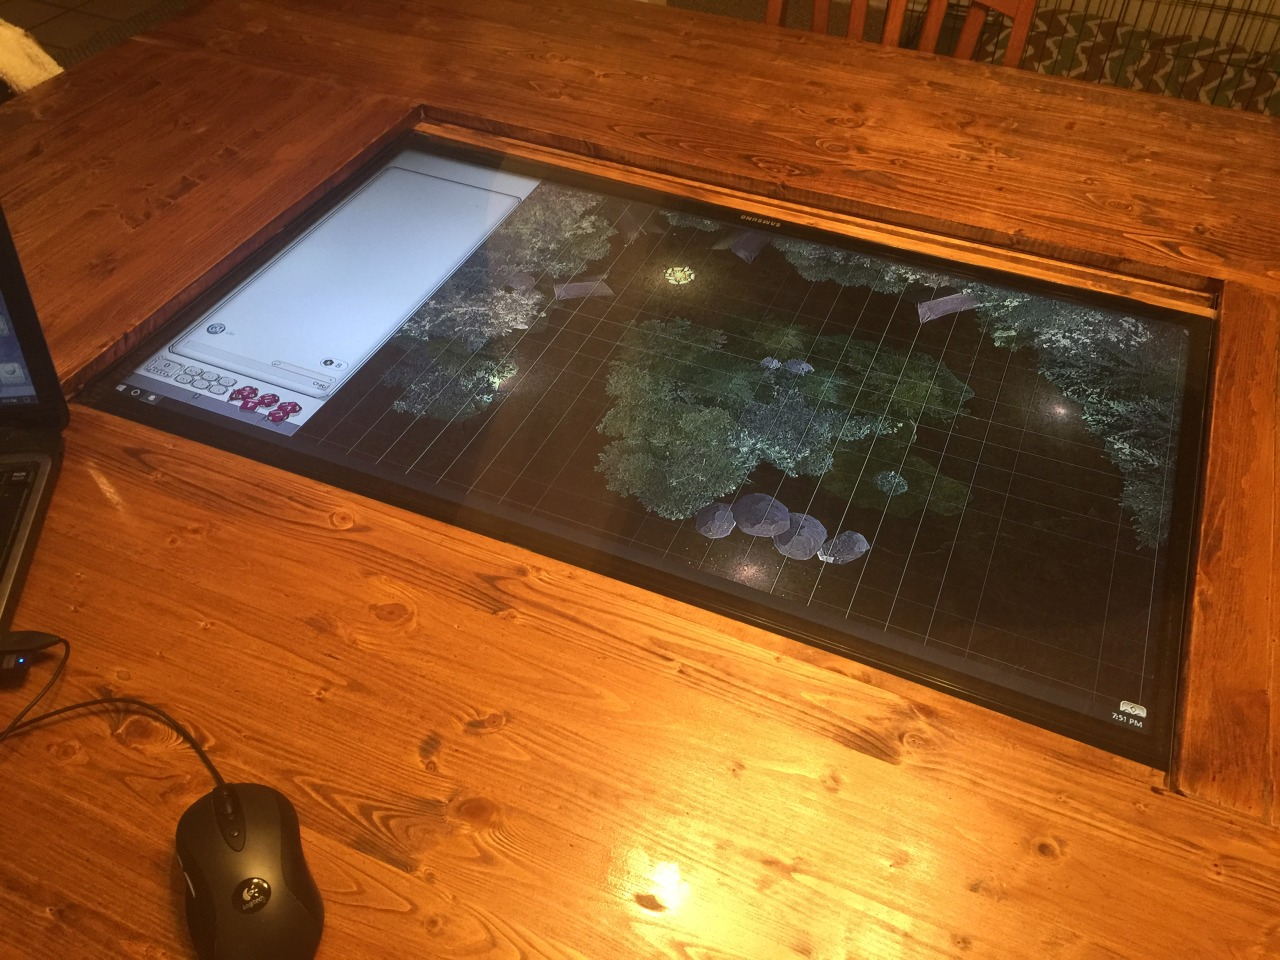 D&D group builds custom digital tabletop with 4K touchscreen - Polygon